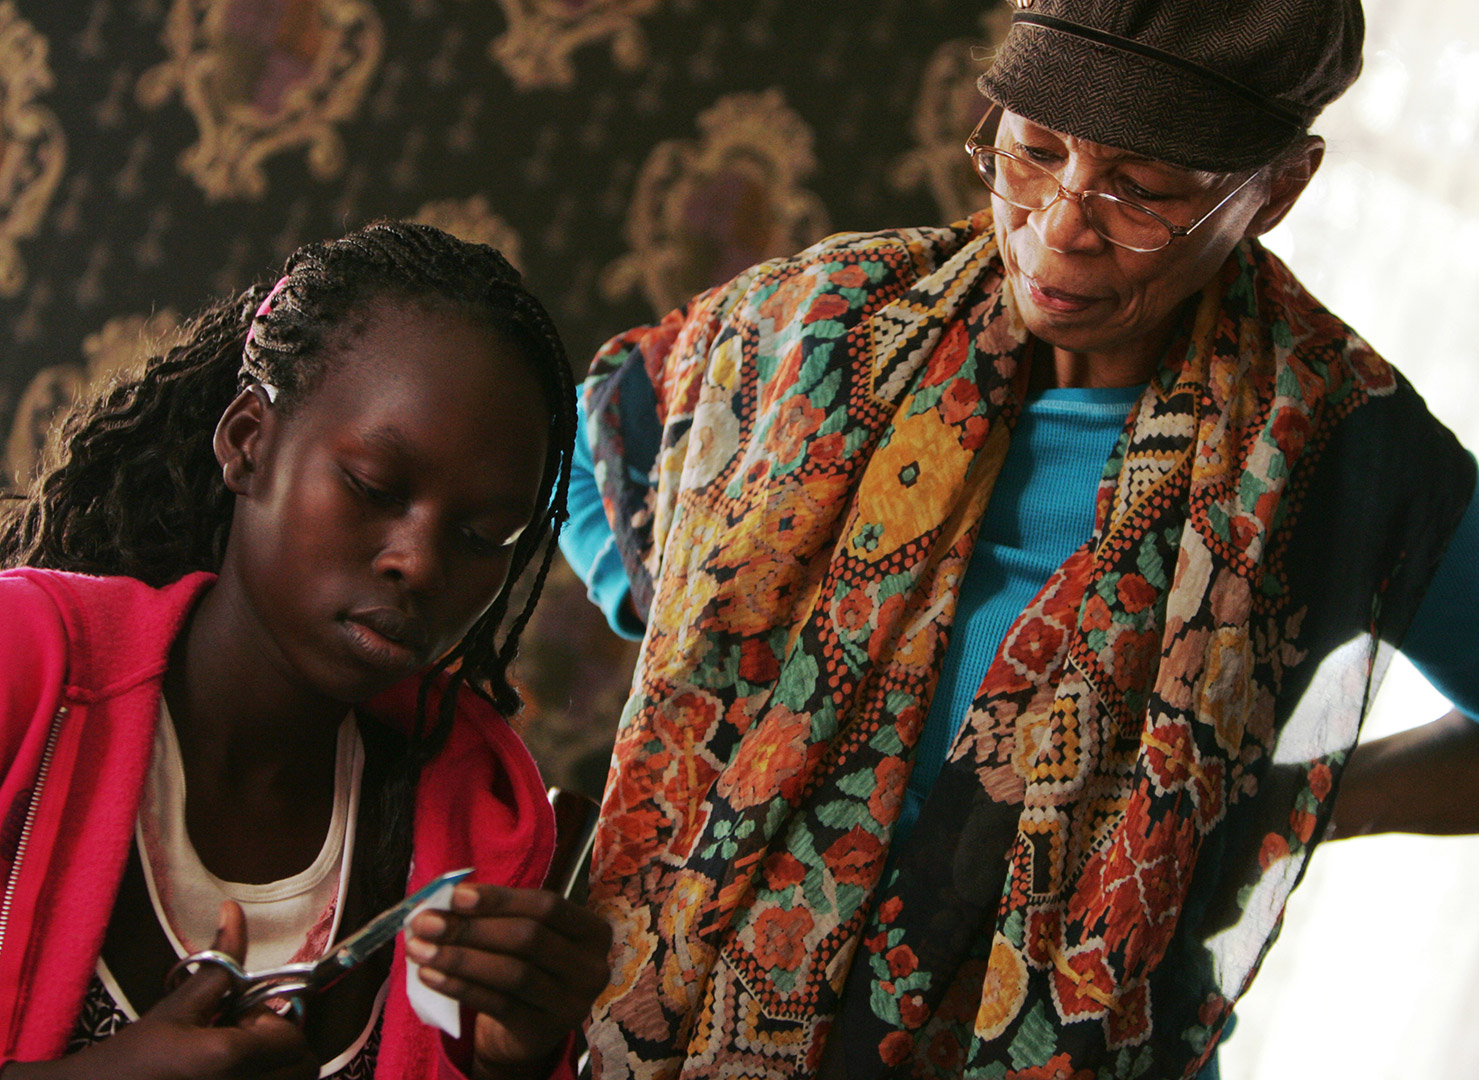 Peggie Hartwell guides Wajdan Yusif as she cuts fabric. Photo by Scott Kingsley, Property of The Grand Island Independent http://theindependent.com